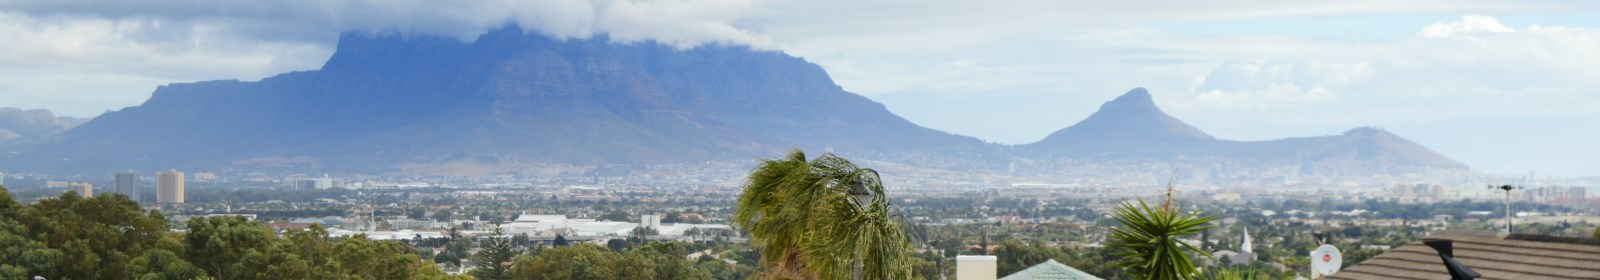 Plattekloof property and lifestyle guide